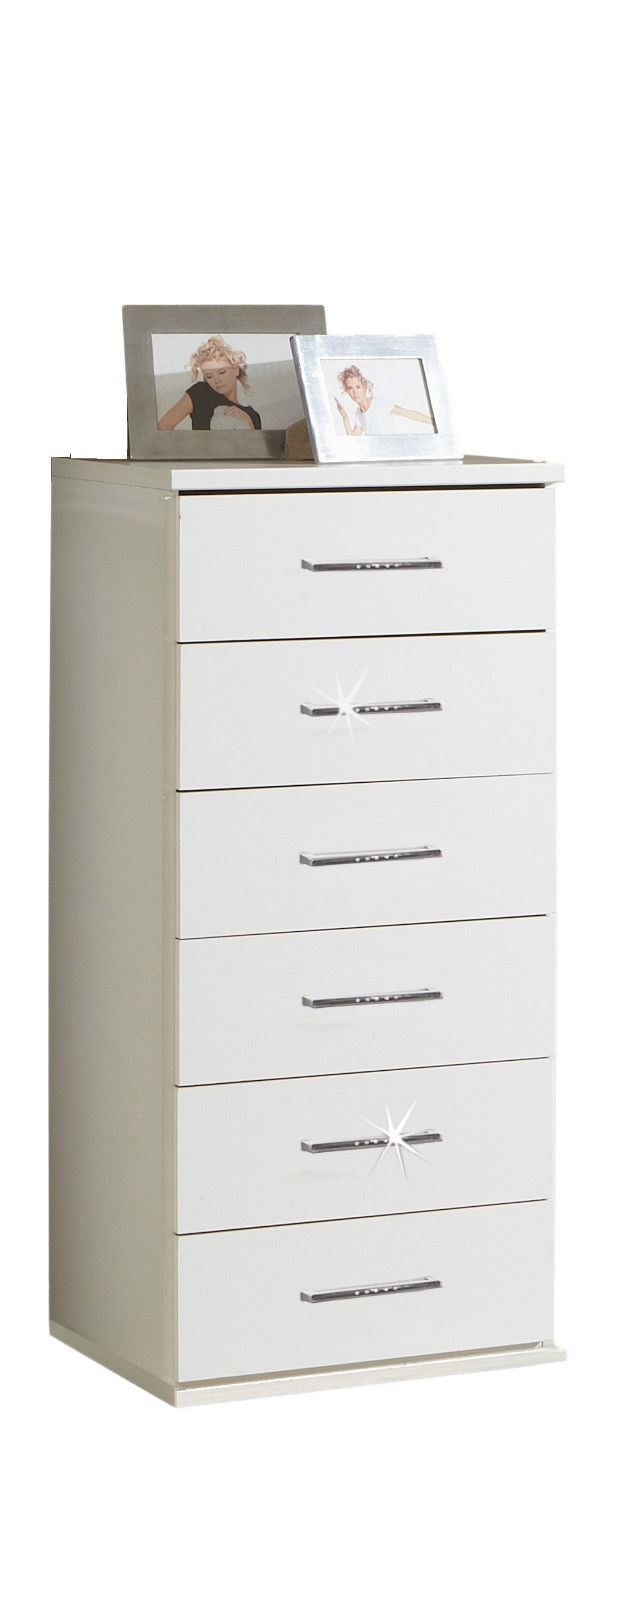 Bijoux German 6 Tall Narrow Chest of Drawers White Crystal Rhinestone Bling 4038061150859 | eBay